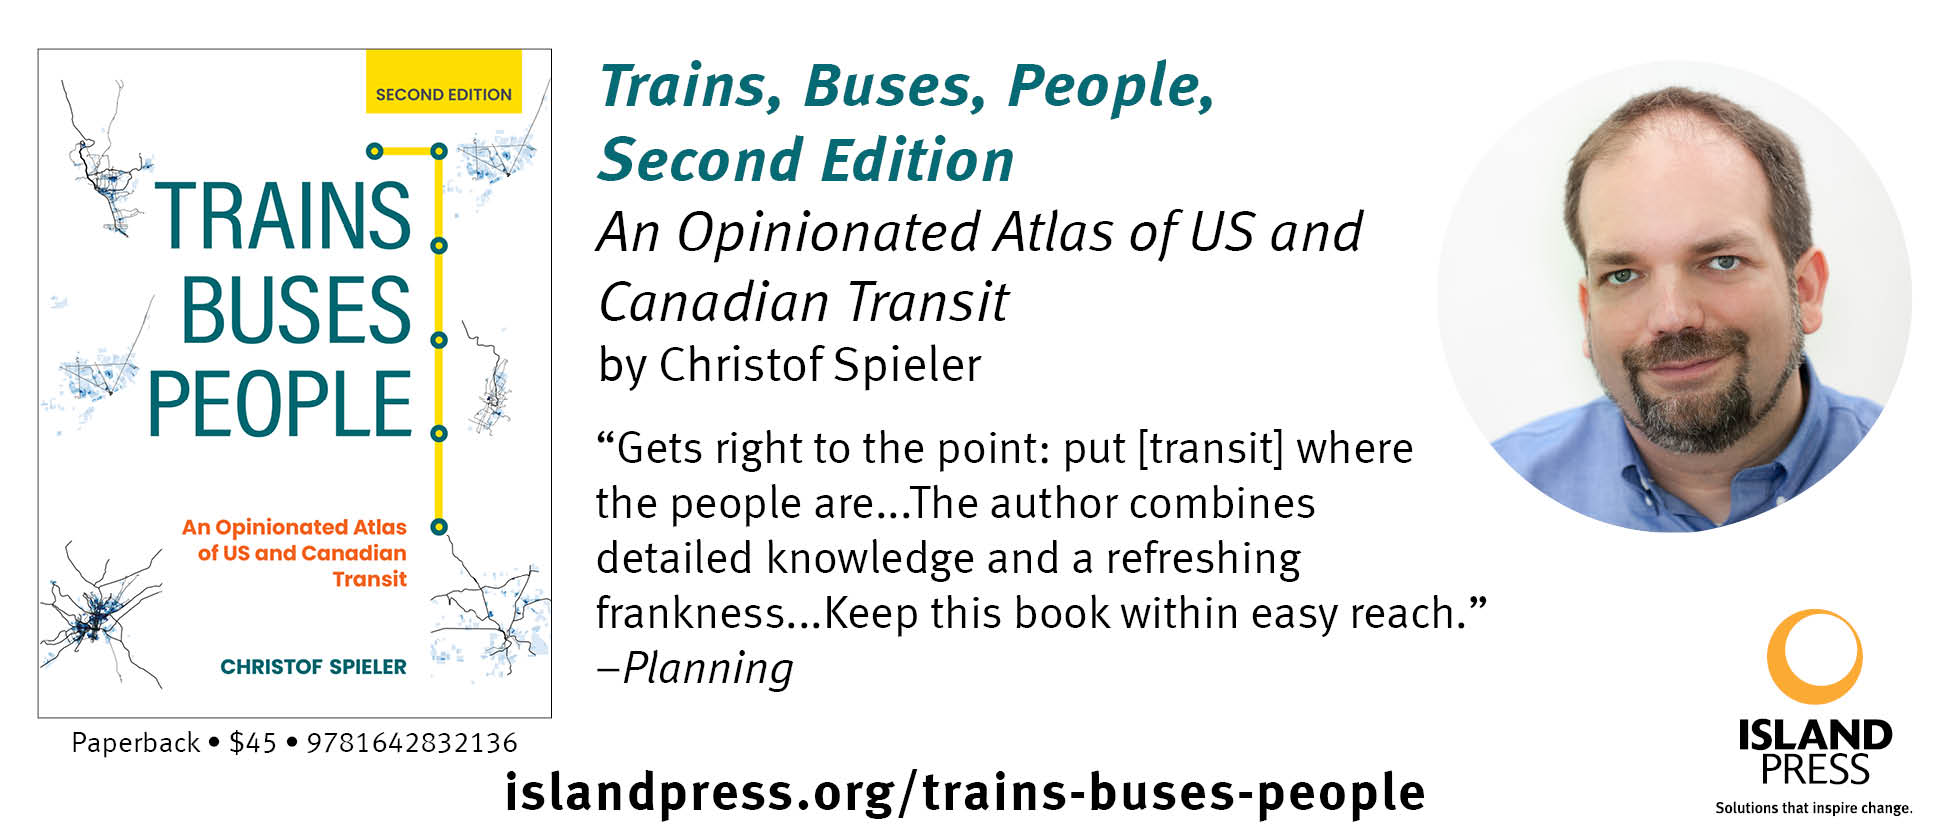 Trains, Buses, People Second Edition:  An Opinion Atlas of US and Canadian Transit